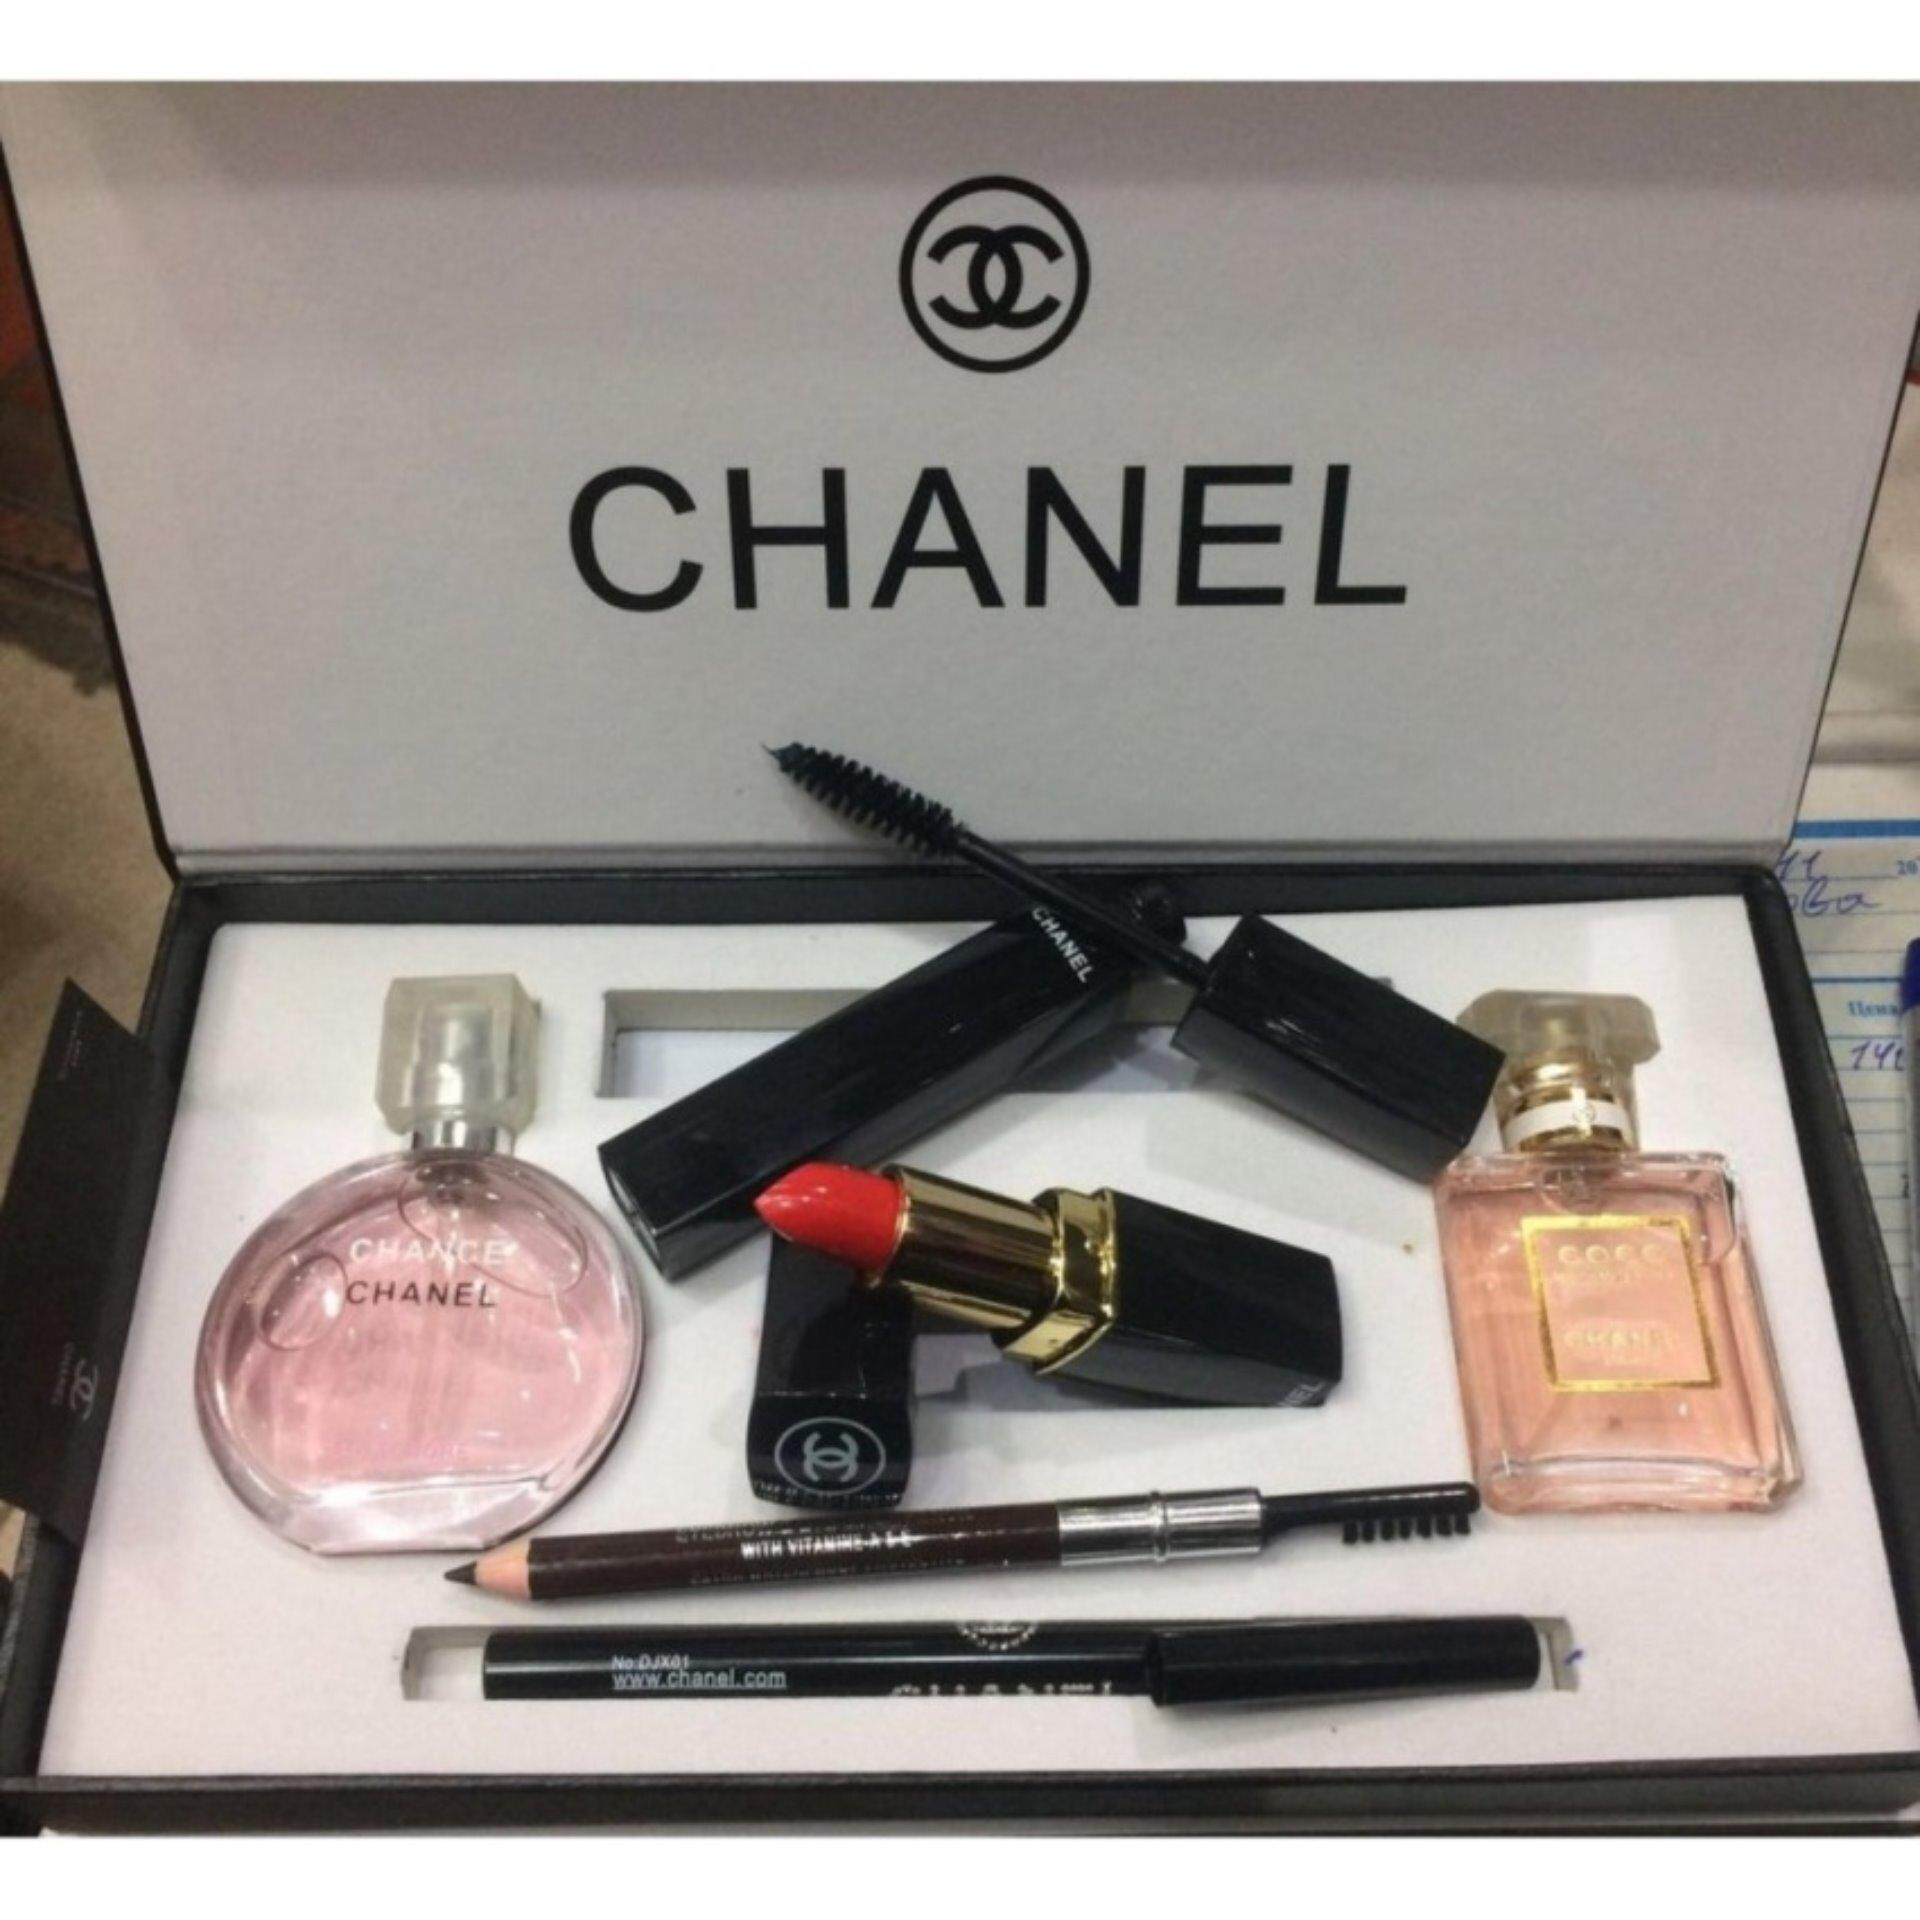 Chanel 5 in 1 Limited Edition Gift set- Chance Chanel 15ml Perfume , Coco Madmosile 15ml Perfume , Mascara , Eyeliner Pencil Lipstick